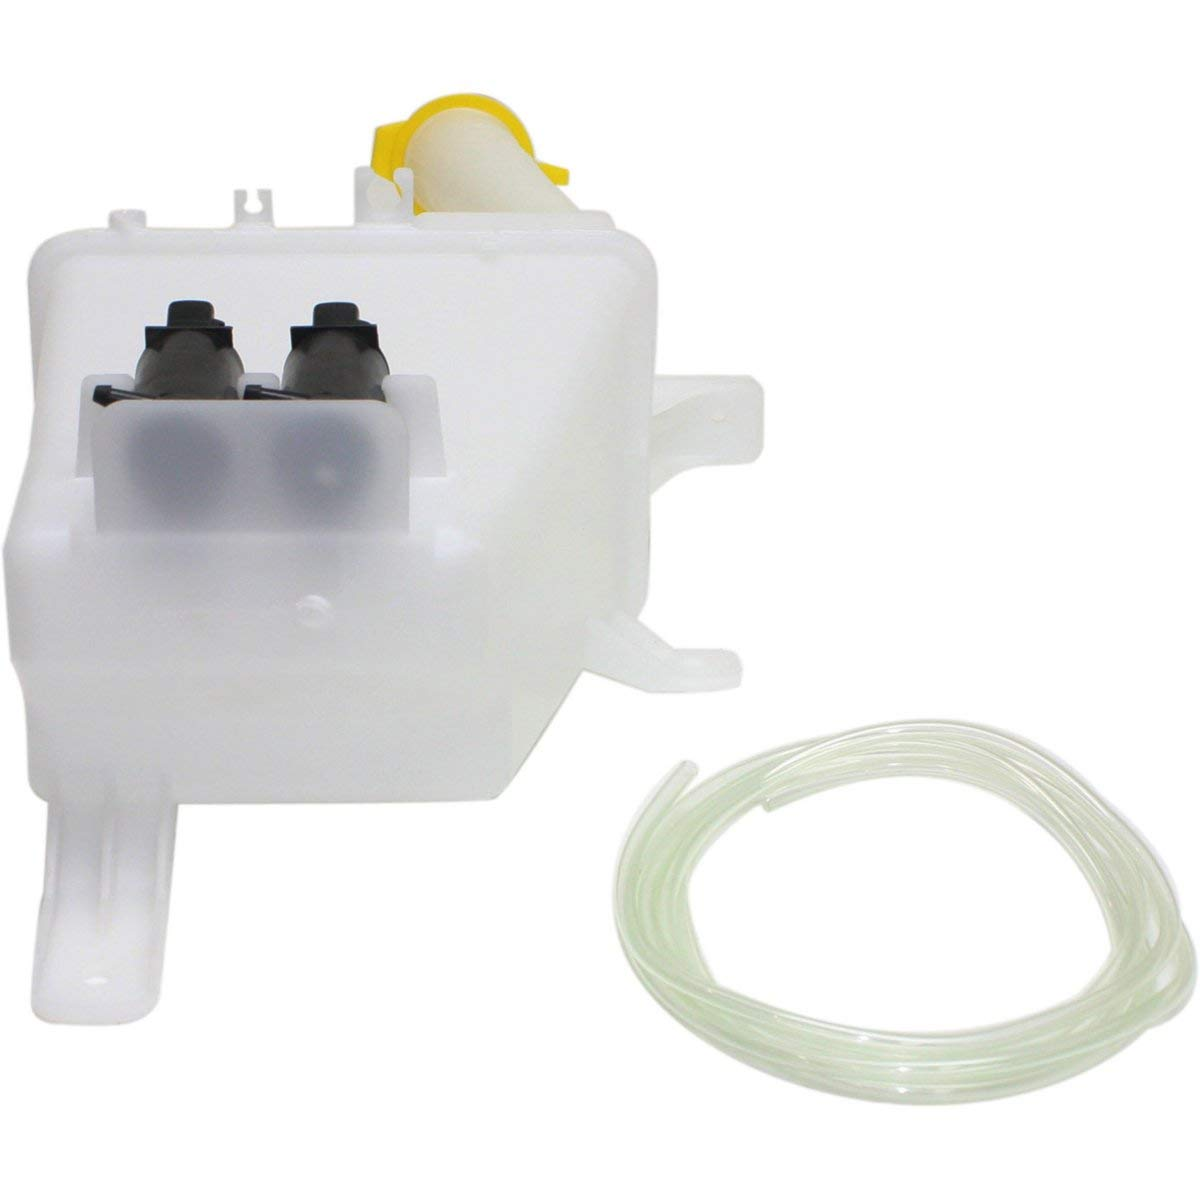 Inlet and Cap New Windshield Washer Tank Assembly For 2004-2007 Chevrolet Aveo /& 2006-2008 Aveo5 With Dual Pump Hatchback GM1288179 96543076